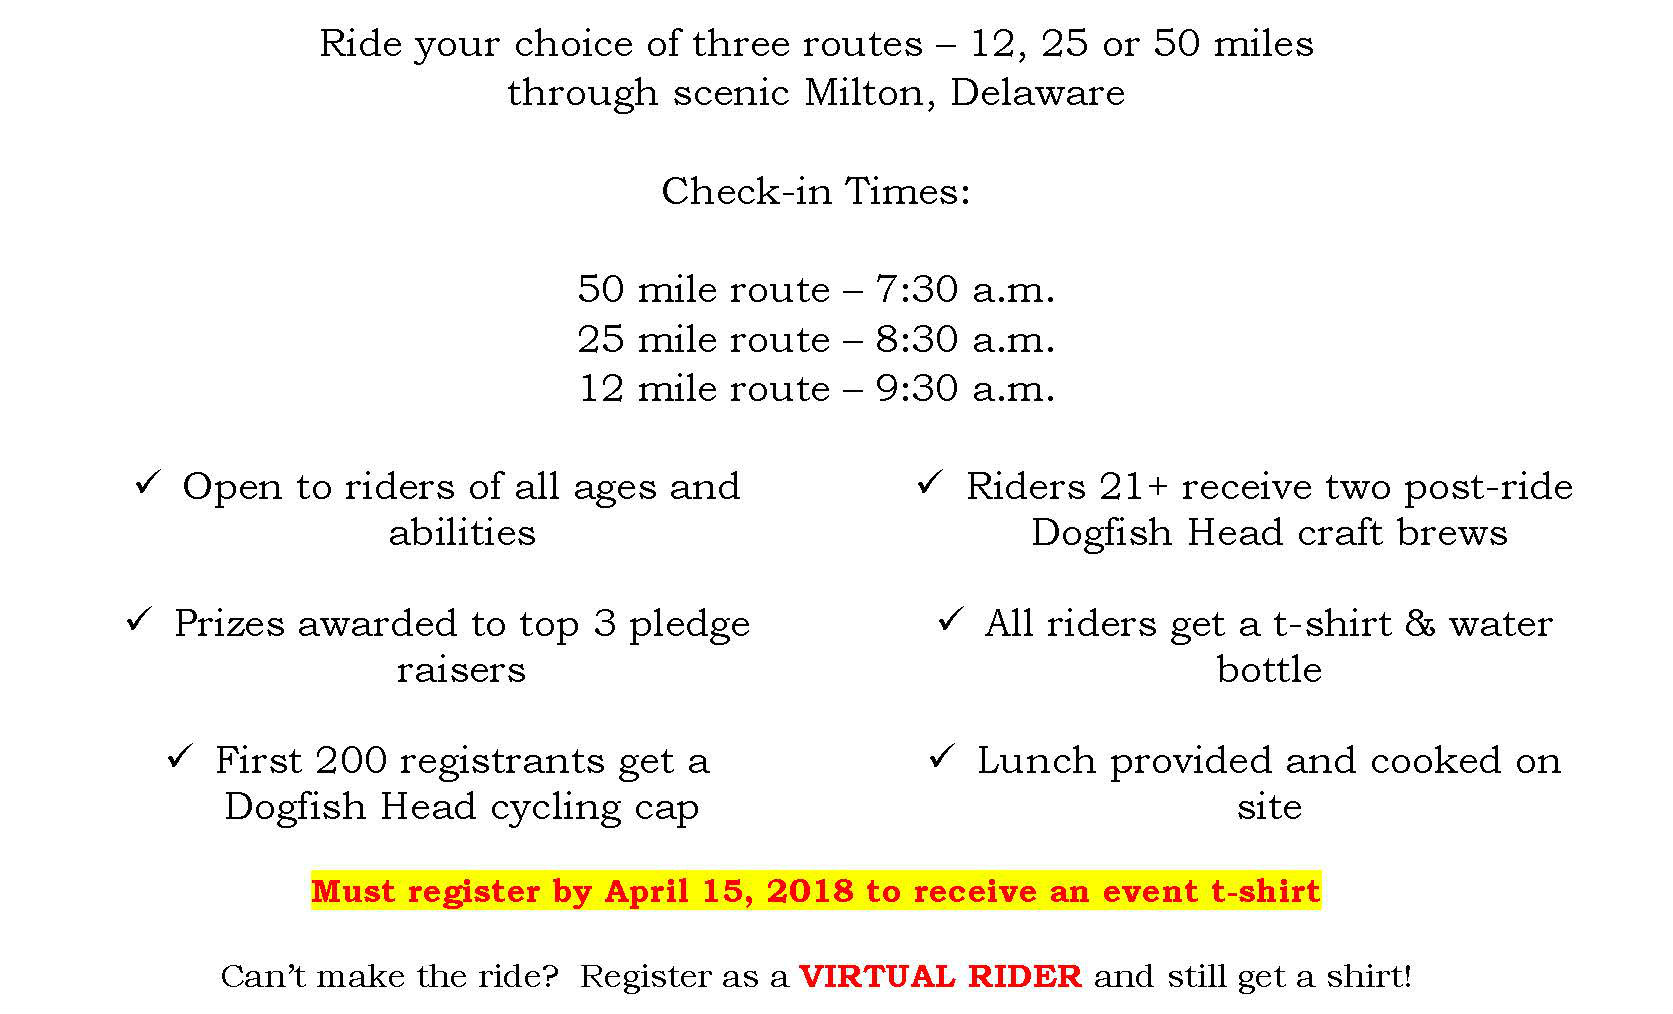 Ride distances and check in times